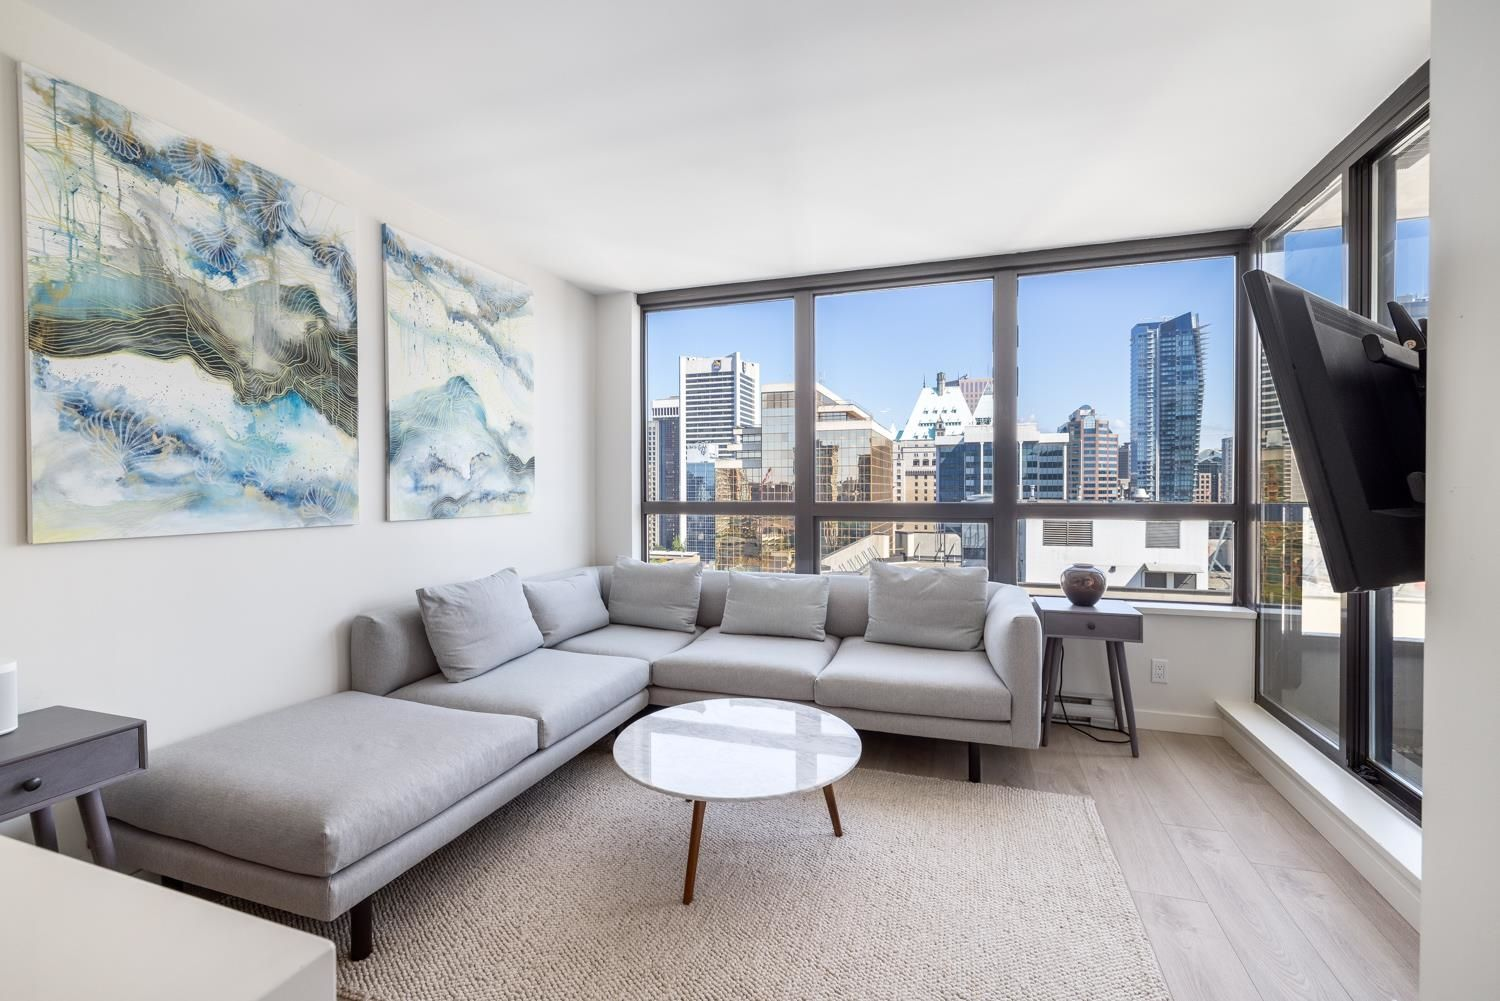 Main Photo: 1916 938 SMITHE STREET in Vancouver: Downtown VW Condo for sale (Vancouver West)  : MLS®# R2614887